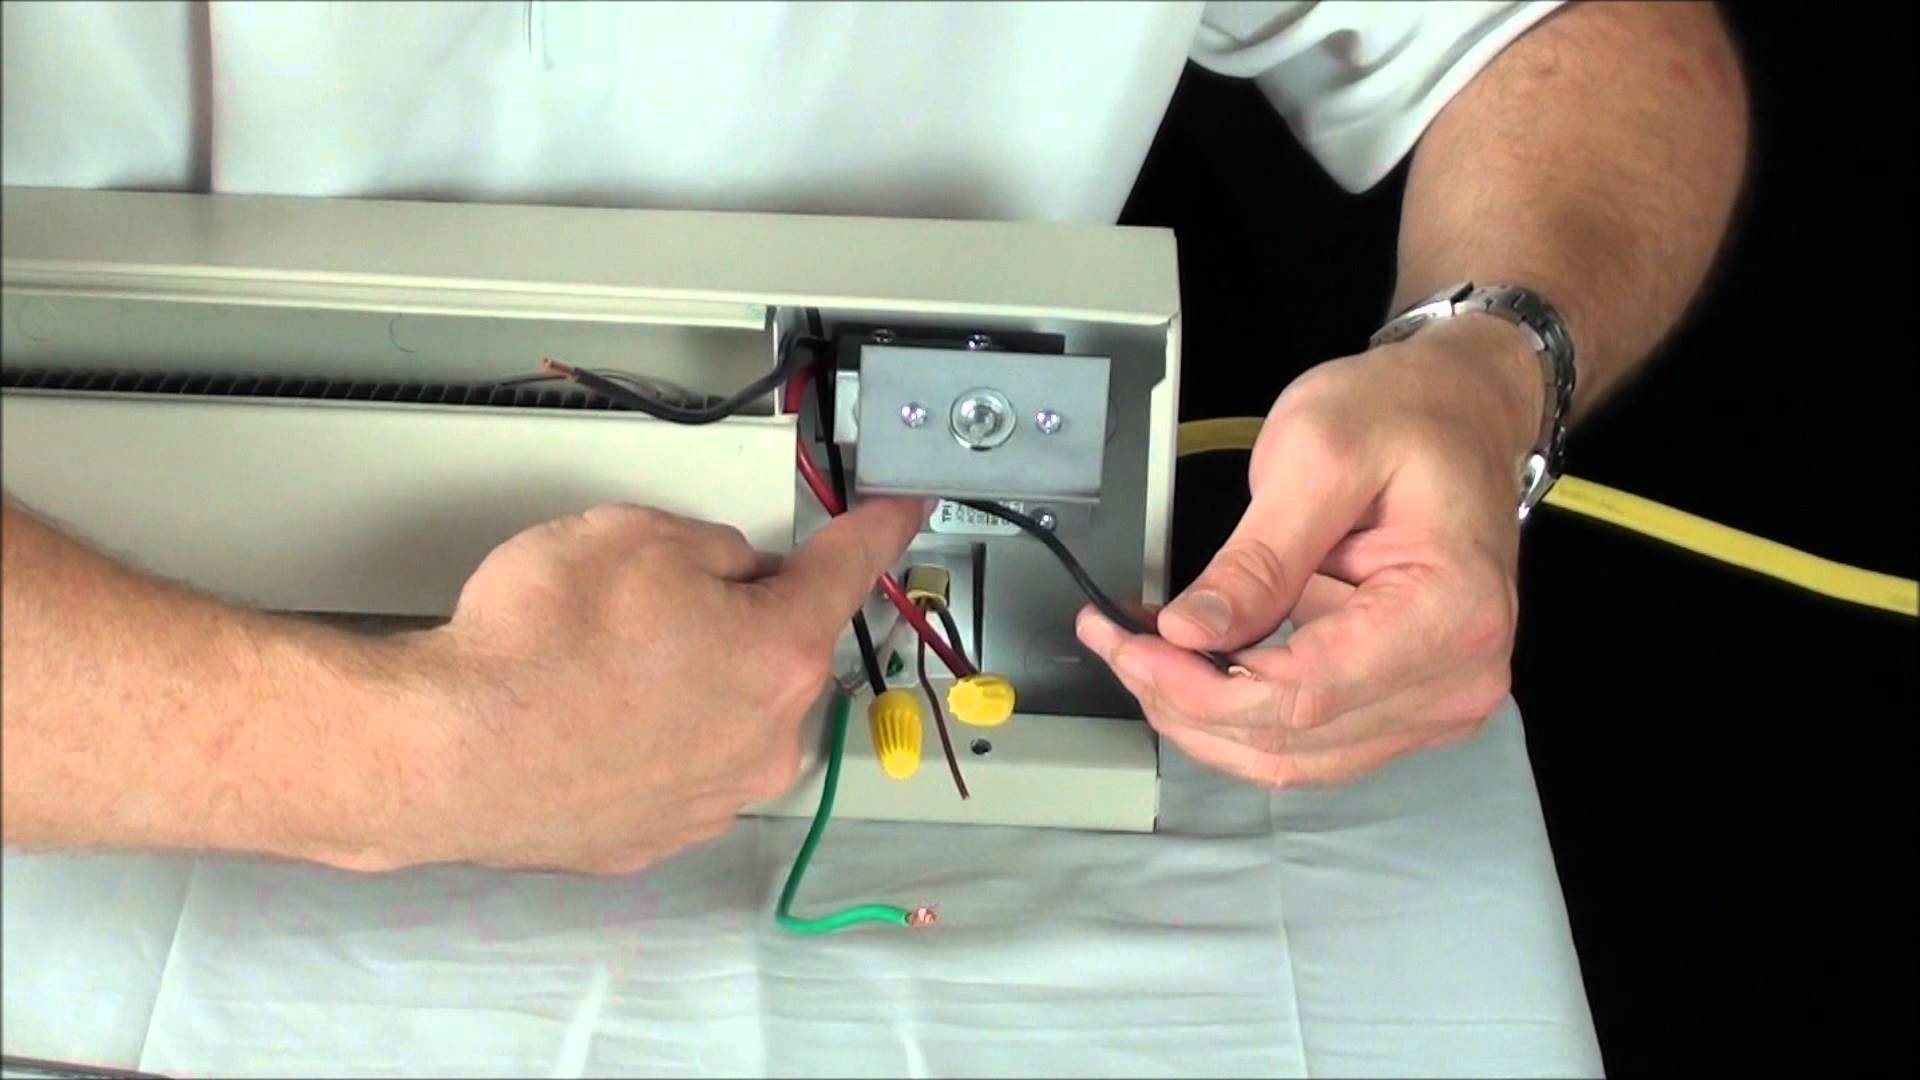 thermostat wiring diagram baseboard heater 2001 chevy silverado how to install a - boca raton chimney repair